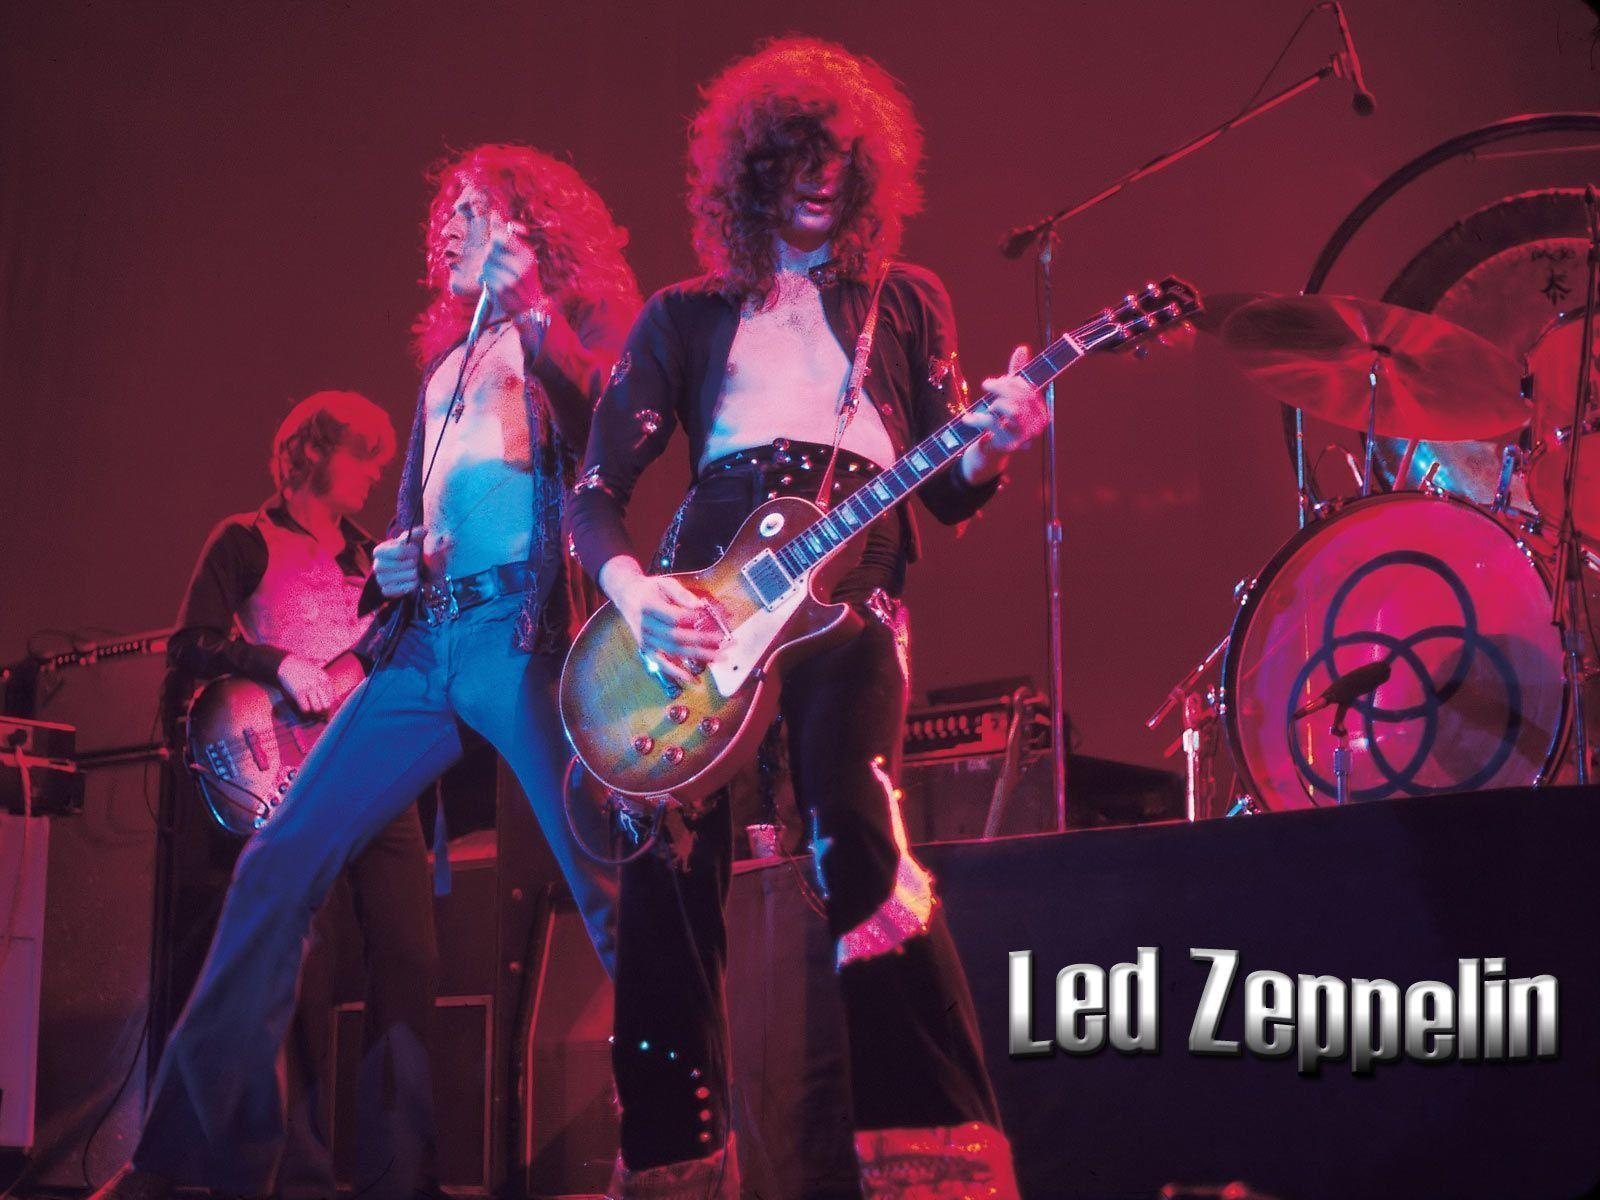 Led Zeppelin Wallpapers - Wallpaper Cave